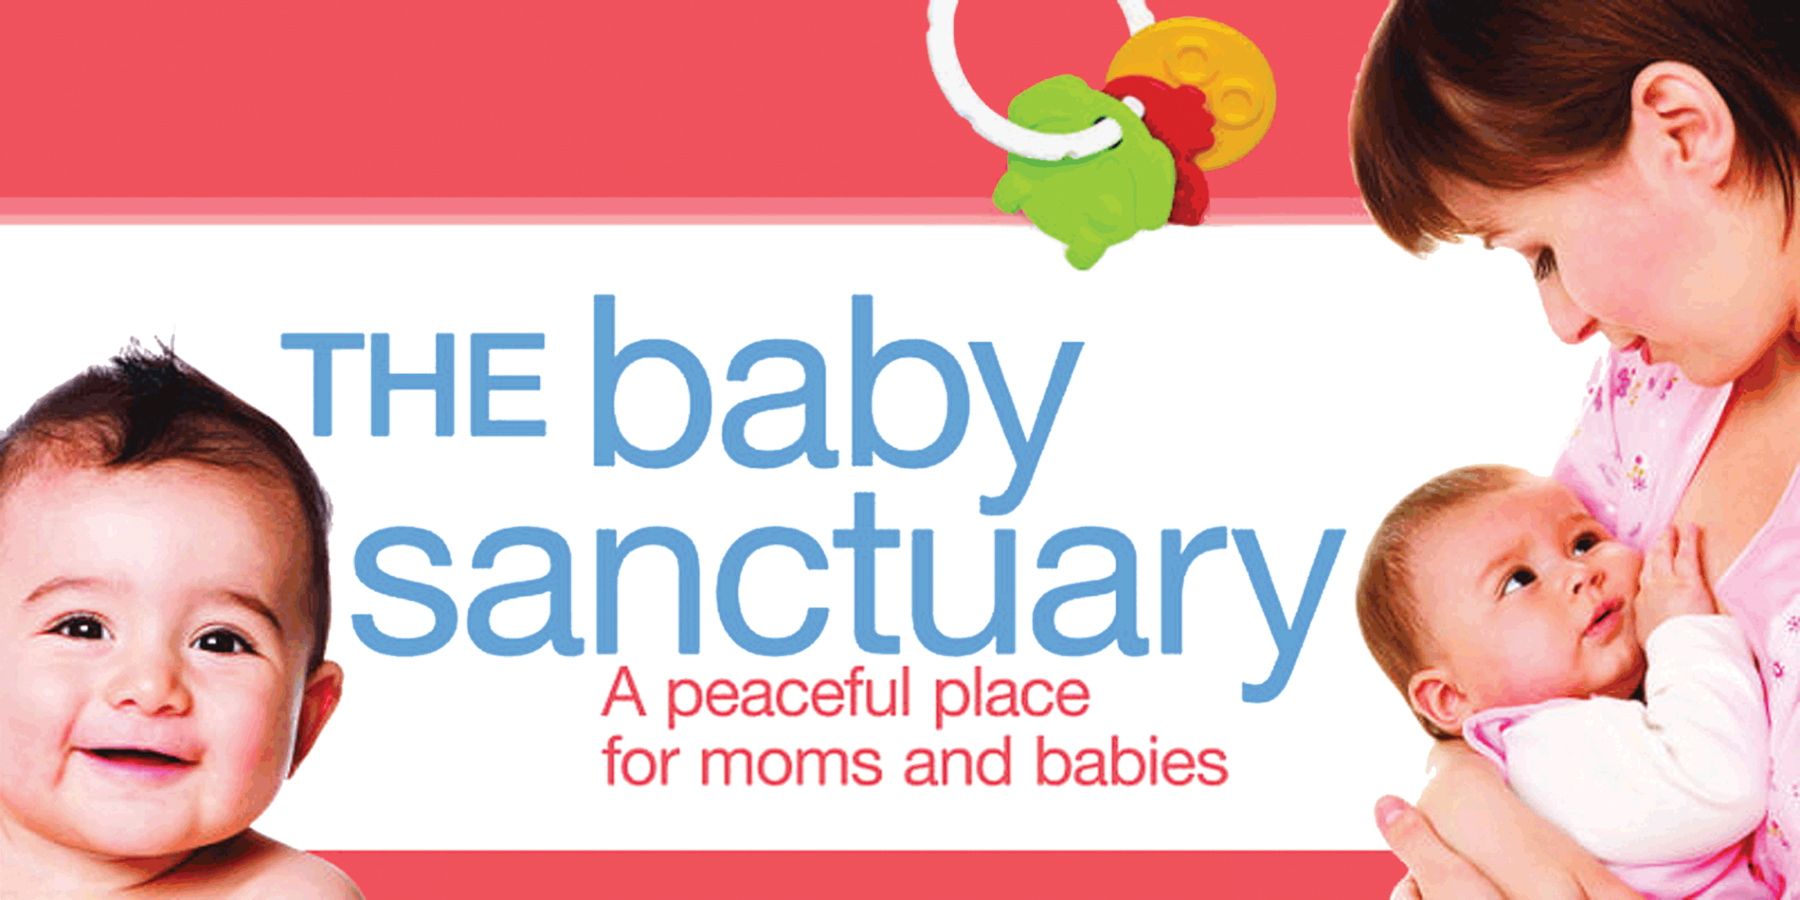 The Baby Sanctuary, a peaceful place for moms and babies